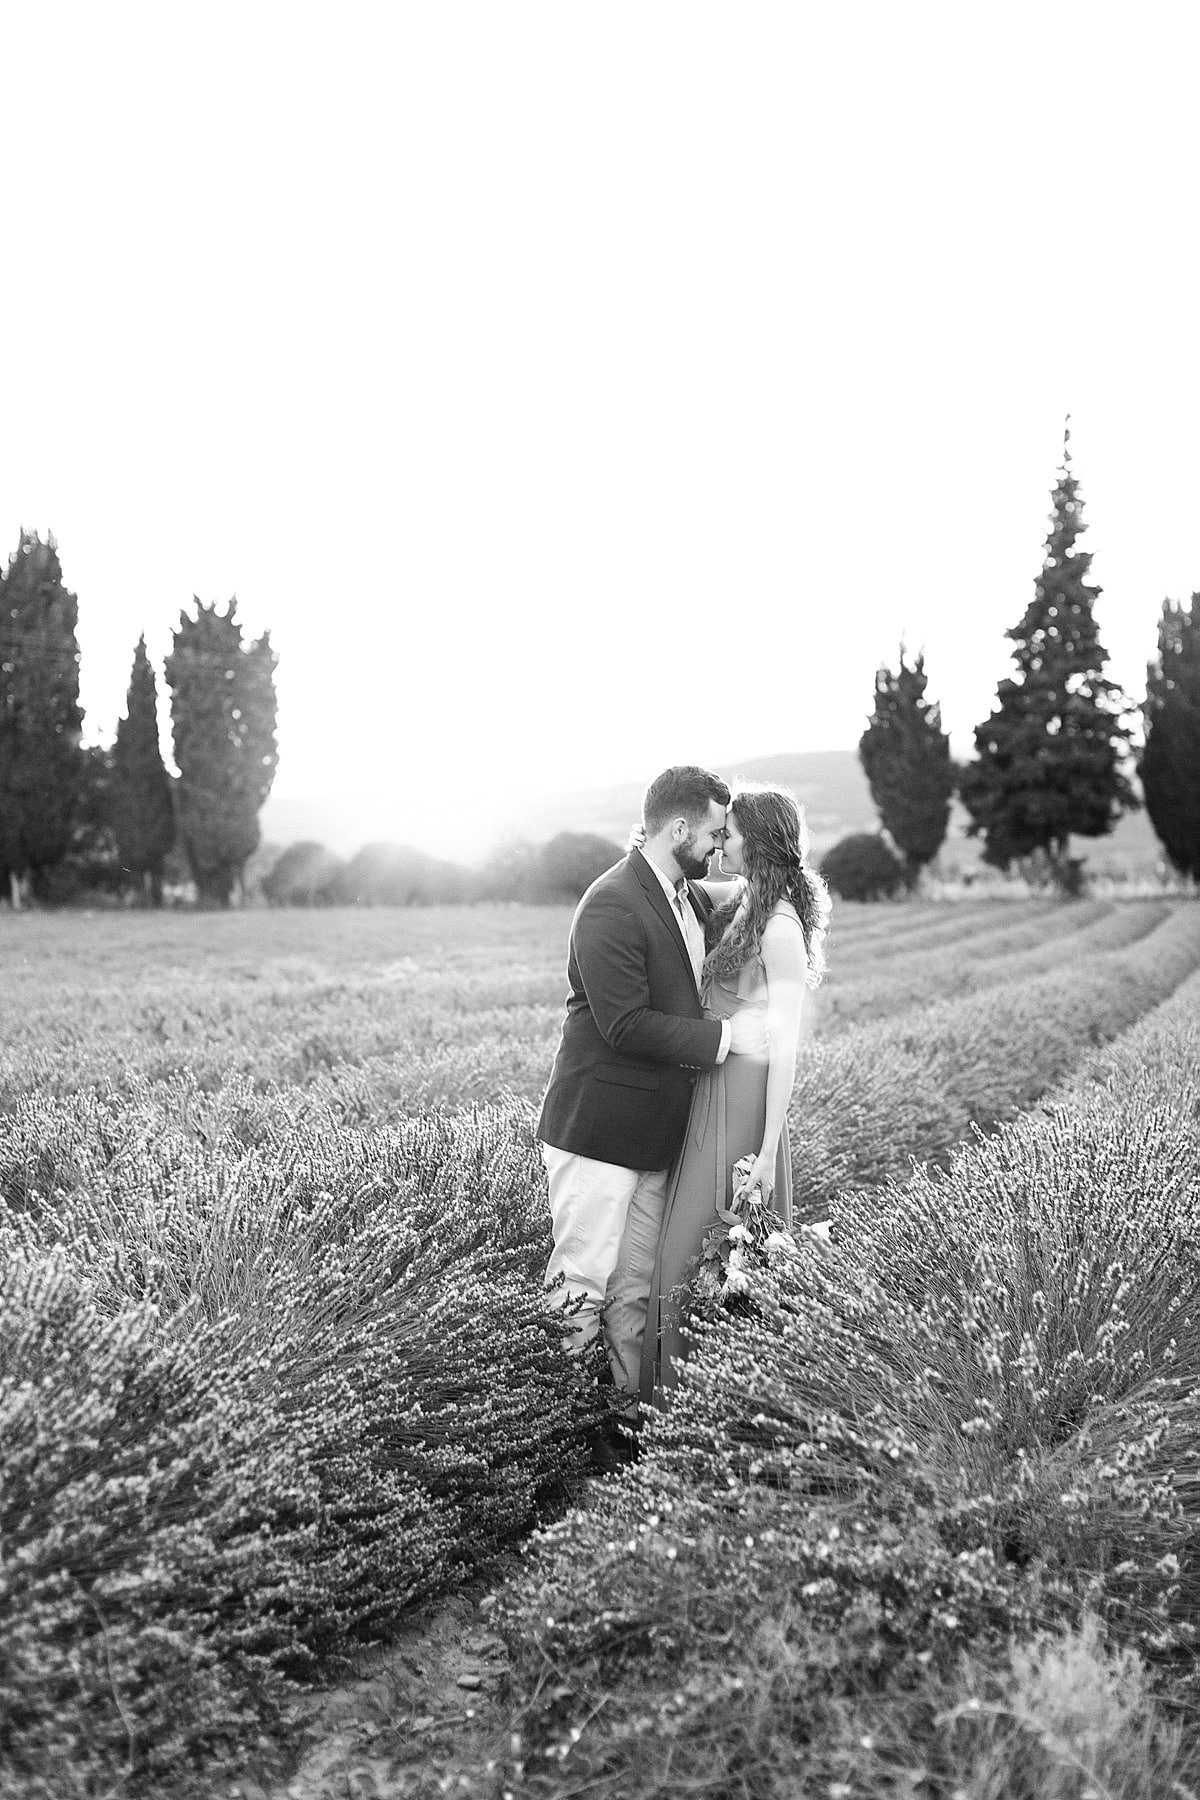 provence-france-lavender-anniversary-session-alicia-yarrish-photography-19